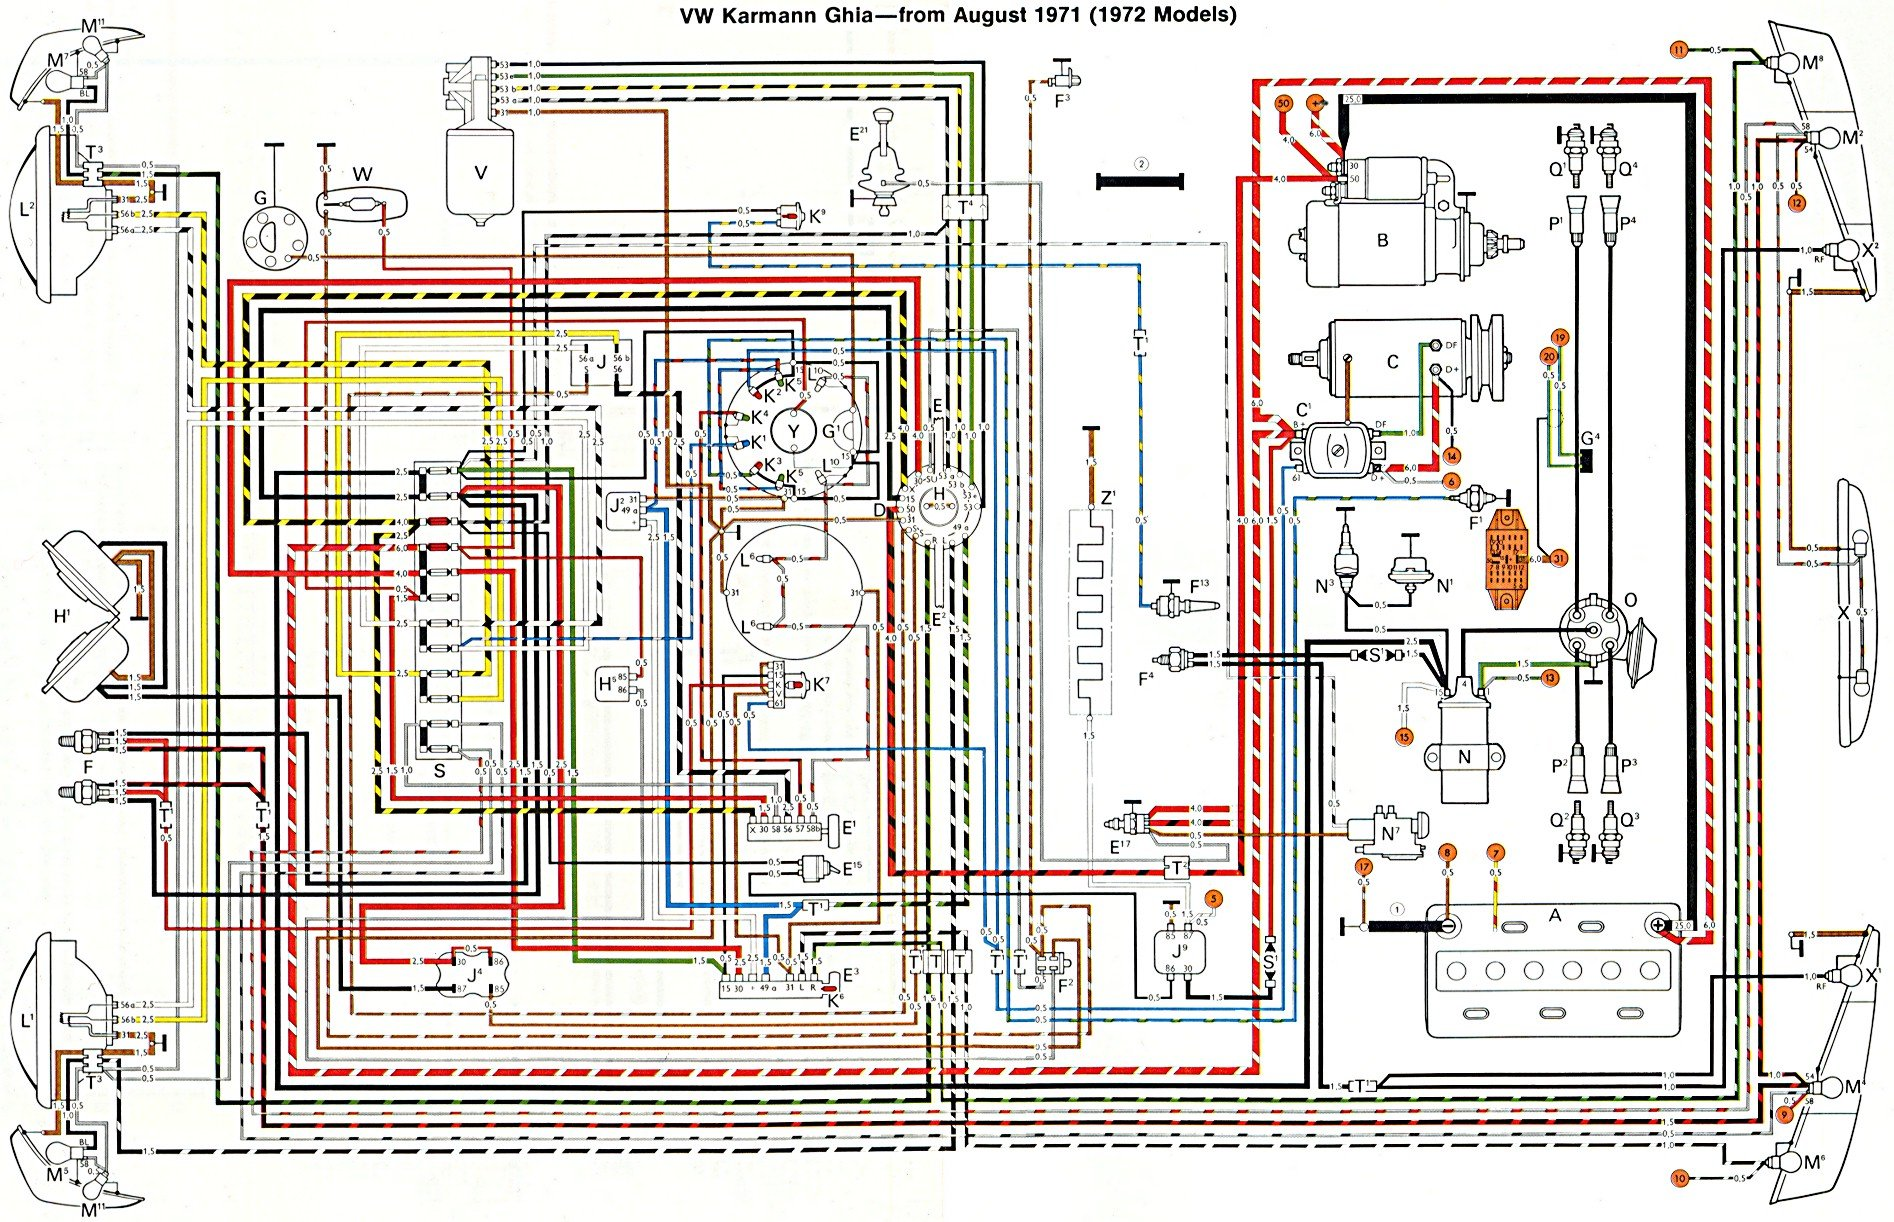 thesamba com karmann ghia wiring diagrams rh thesamba com VW Golf Wiring Diagram 74 VW Beetle Wiring Diagram